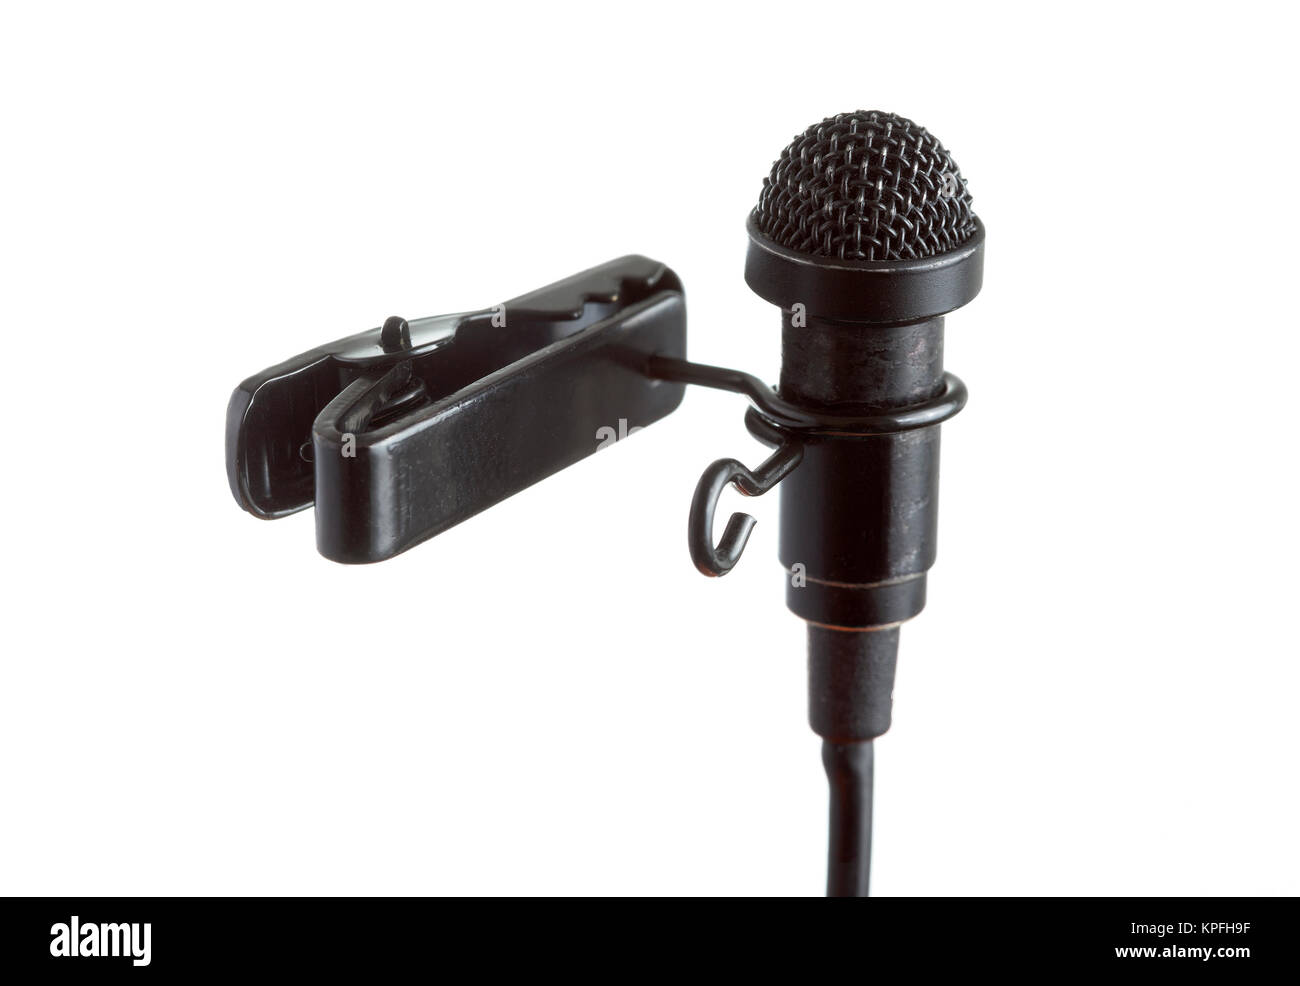 Close-up of a tie-clip microphone with a white background - Stock Image